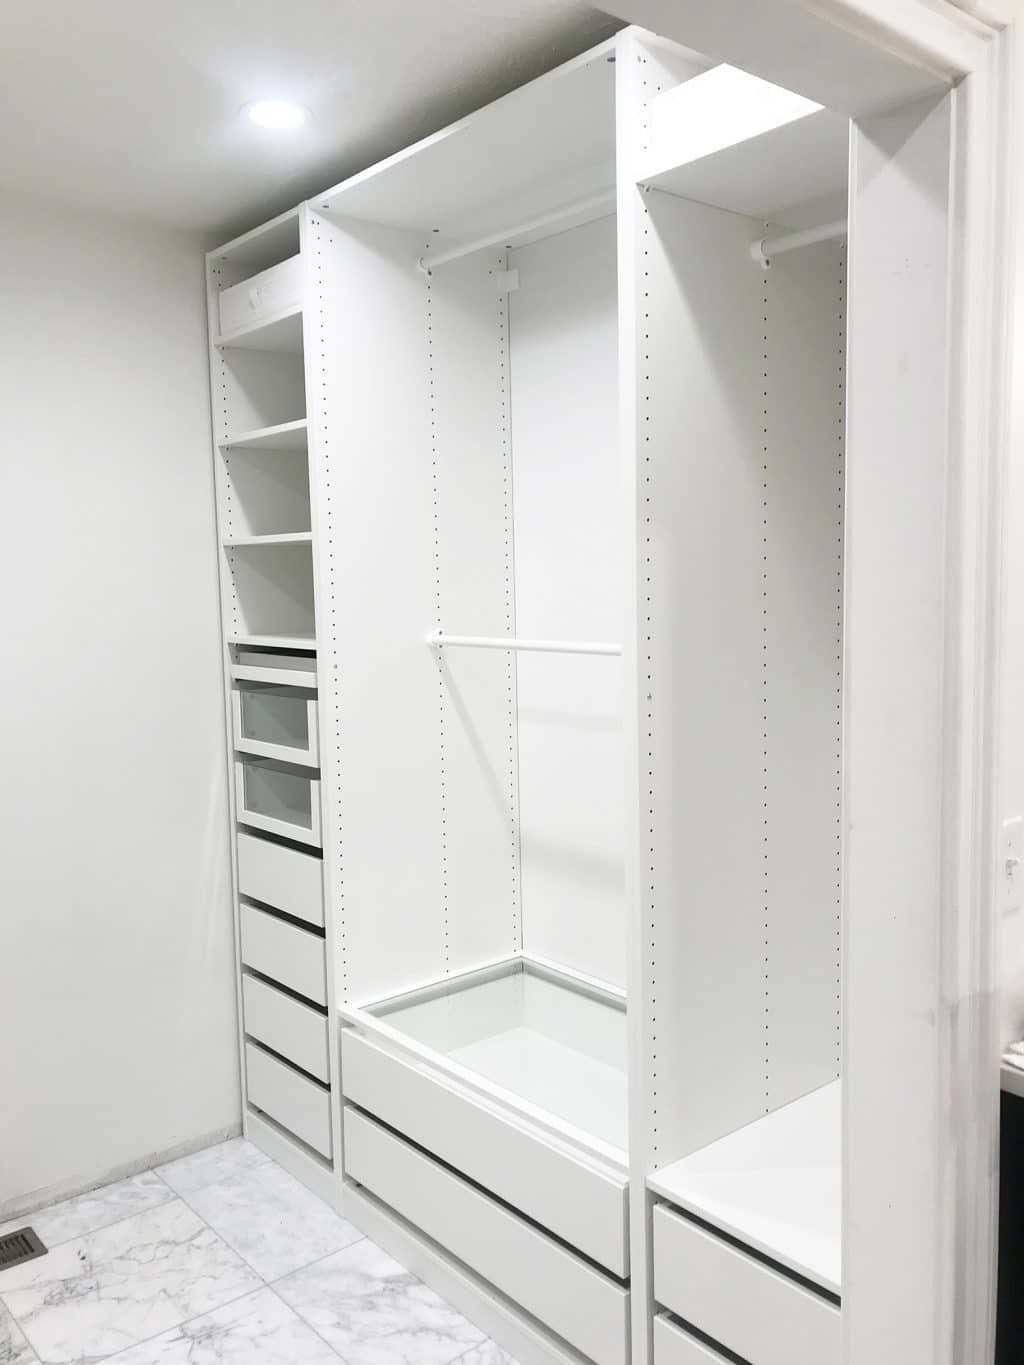 Ikea Home Planner Italiano everything you ever needed to know about ikea closets! from